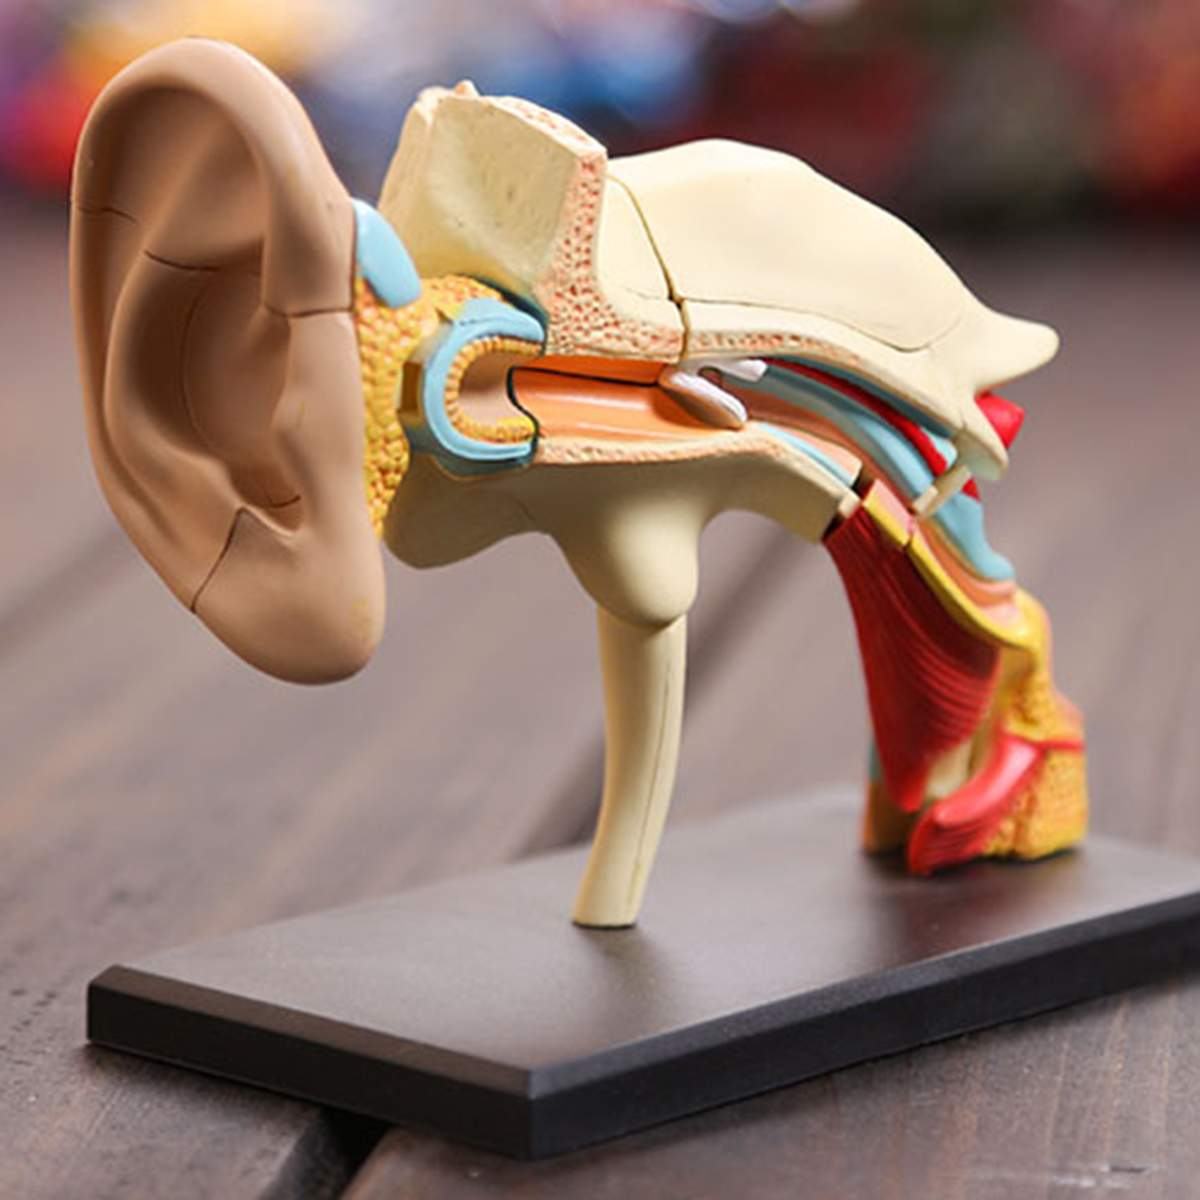 106x90x59mm 4D Vision Human Ear Anatomy Model School Educational Medical Science Learning Tool Dental Decoration Teaching Model